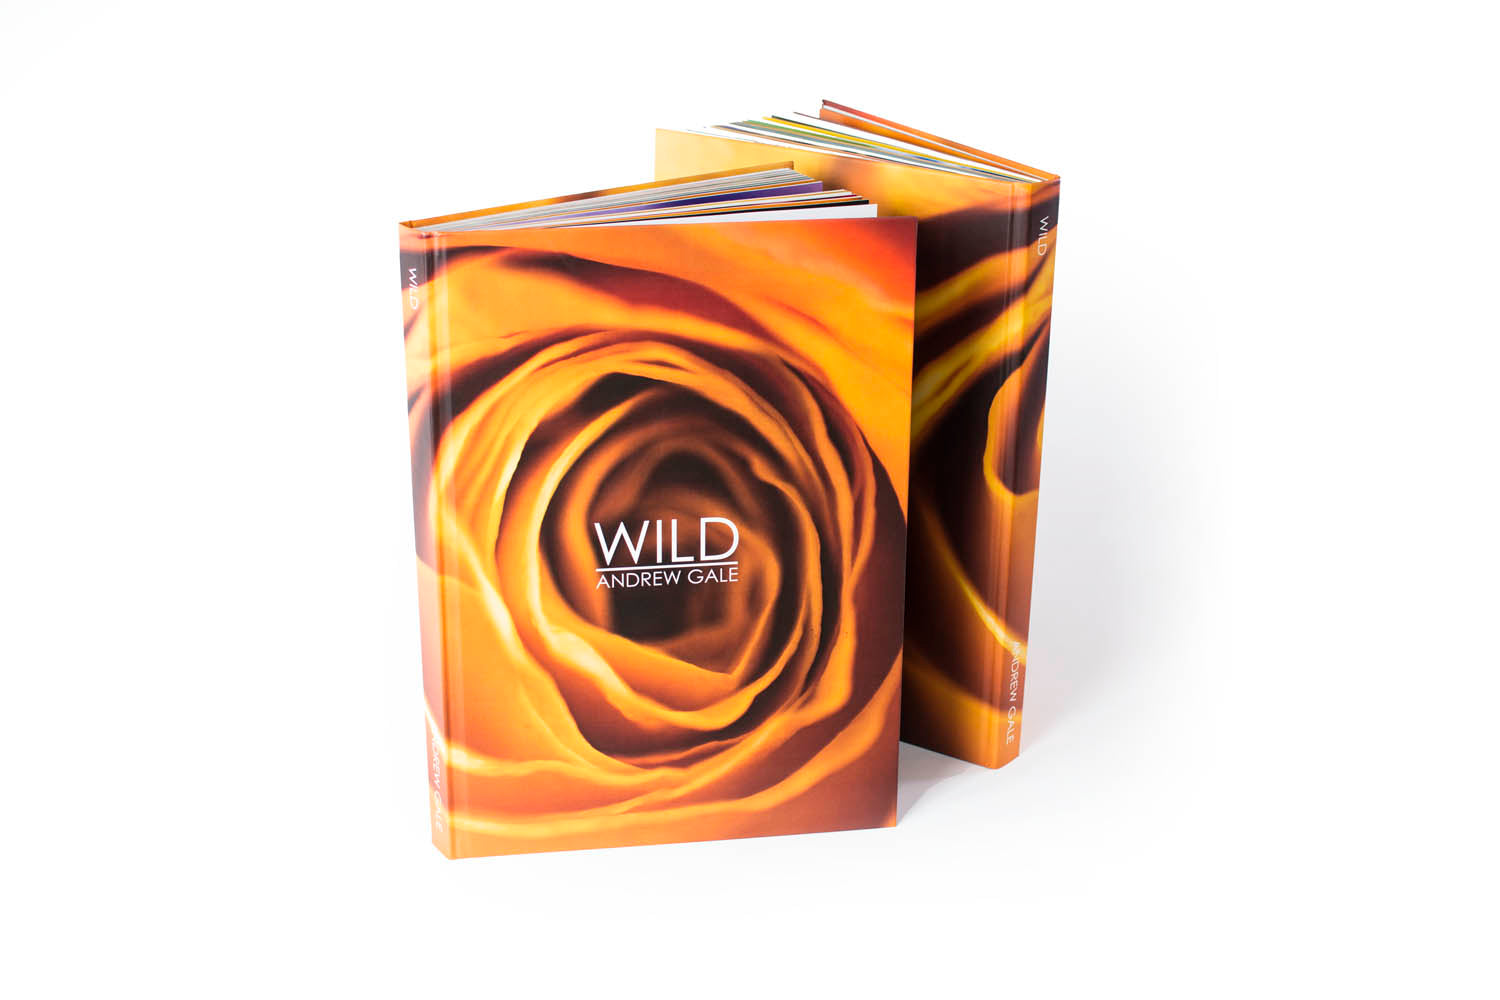 WILD - Limited Edition Photobook